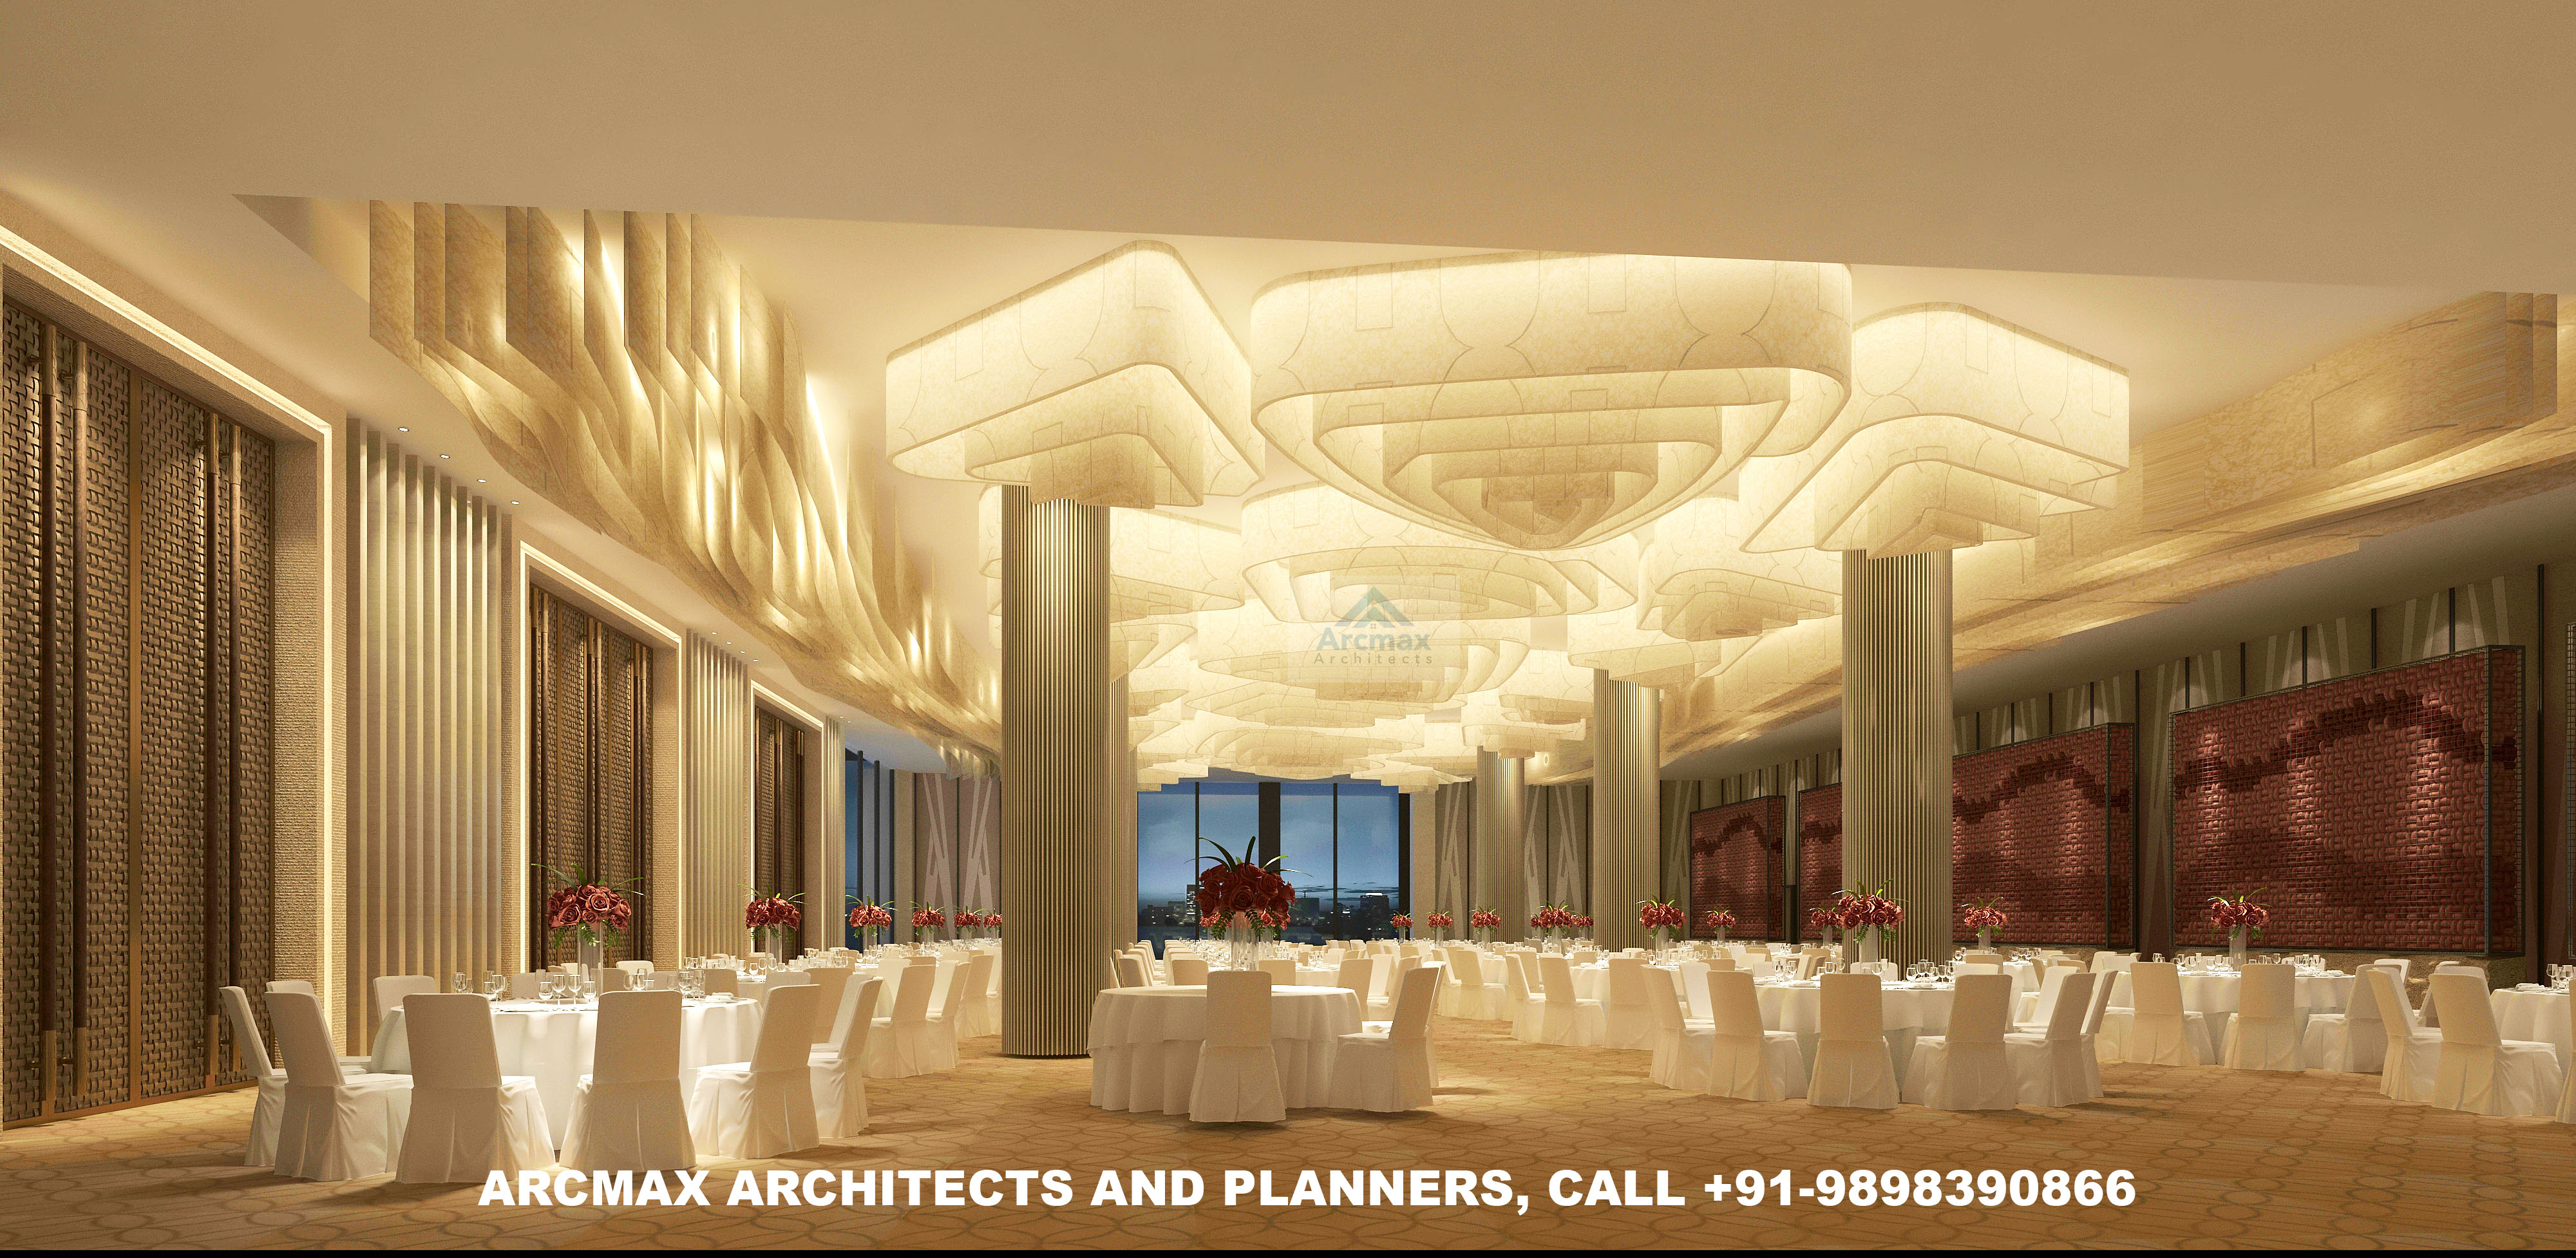 Banquet Hall Design And Planning Online Anywhere In The World Arcmax Architects